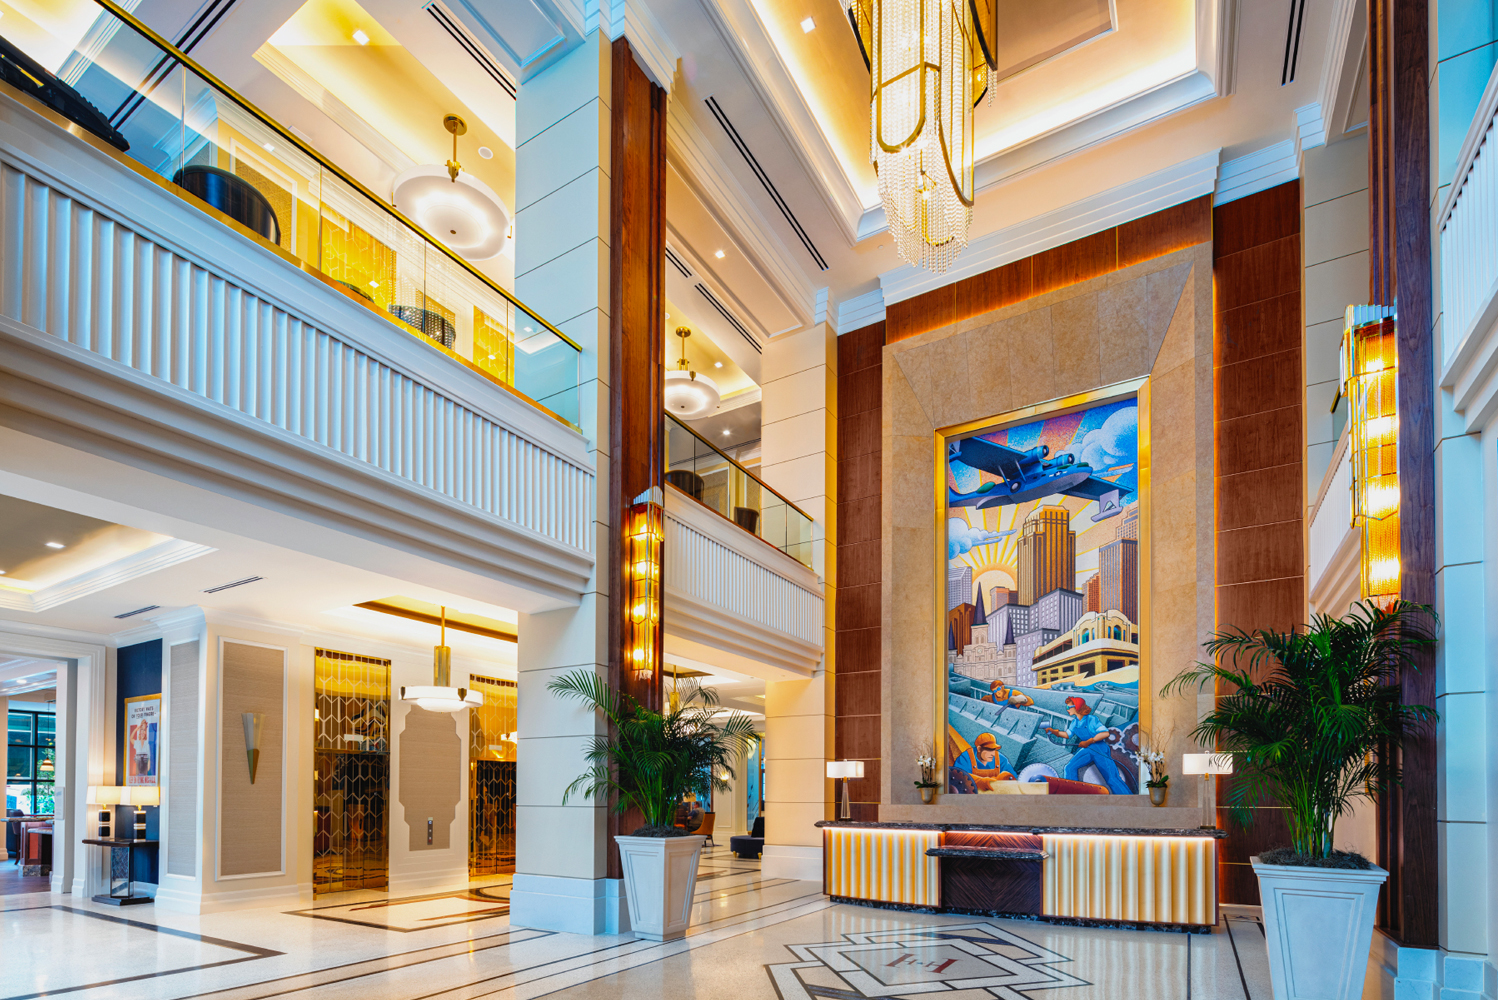 The hotel is the first in the state of Louisiana to be part of the exclusive Curio Collection by Hilton.